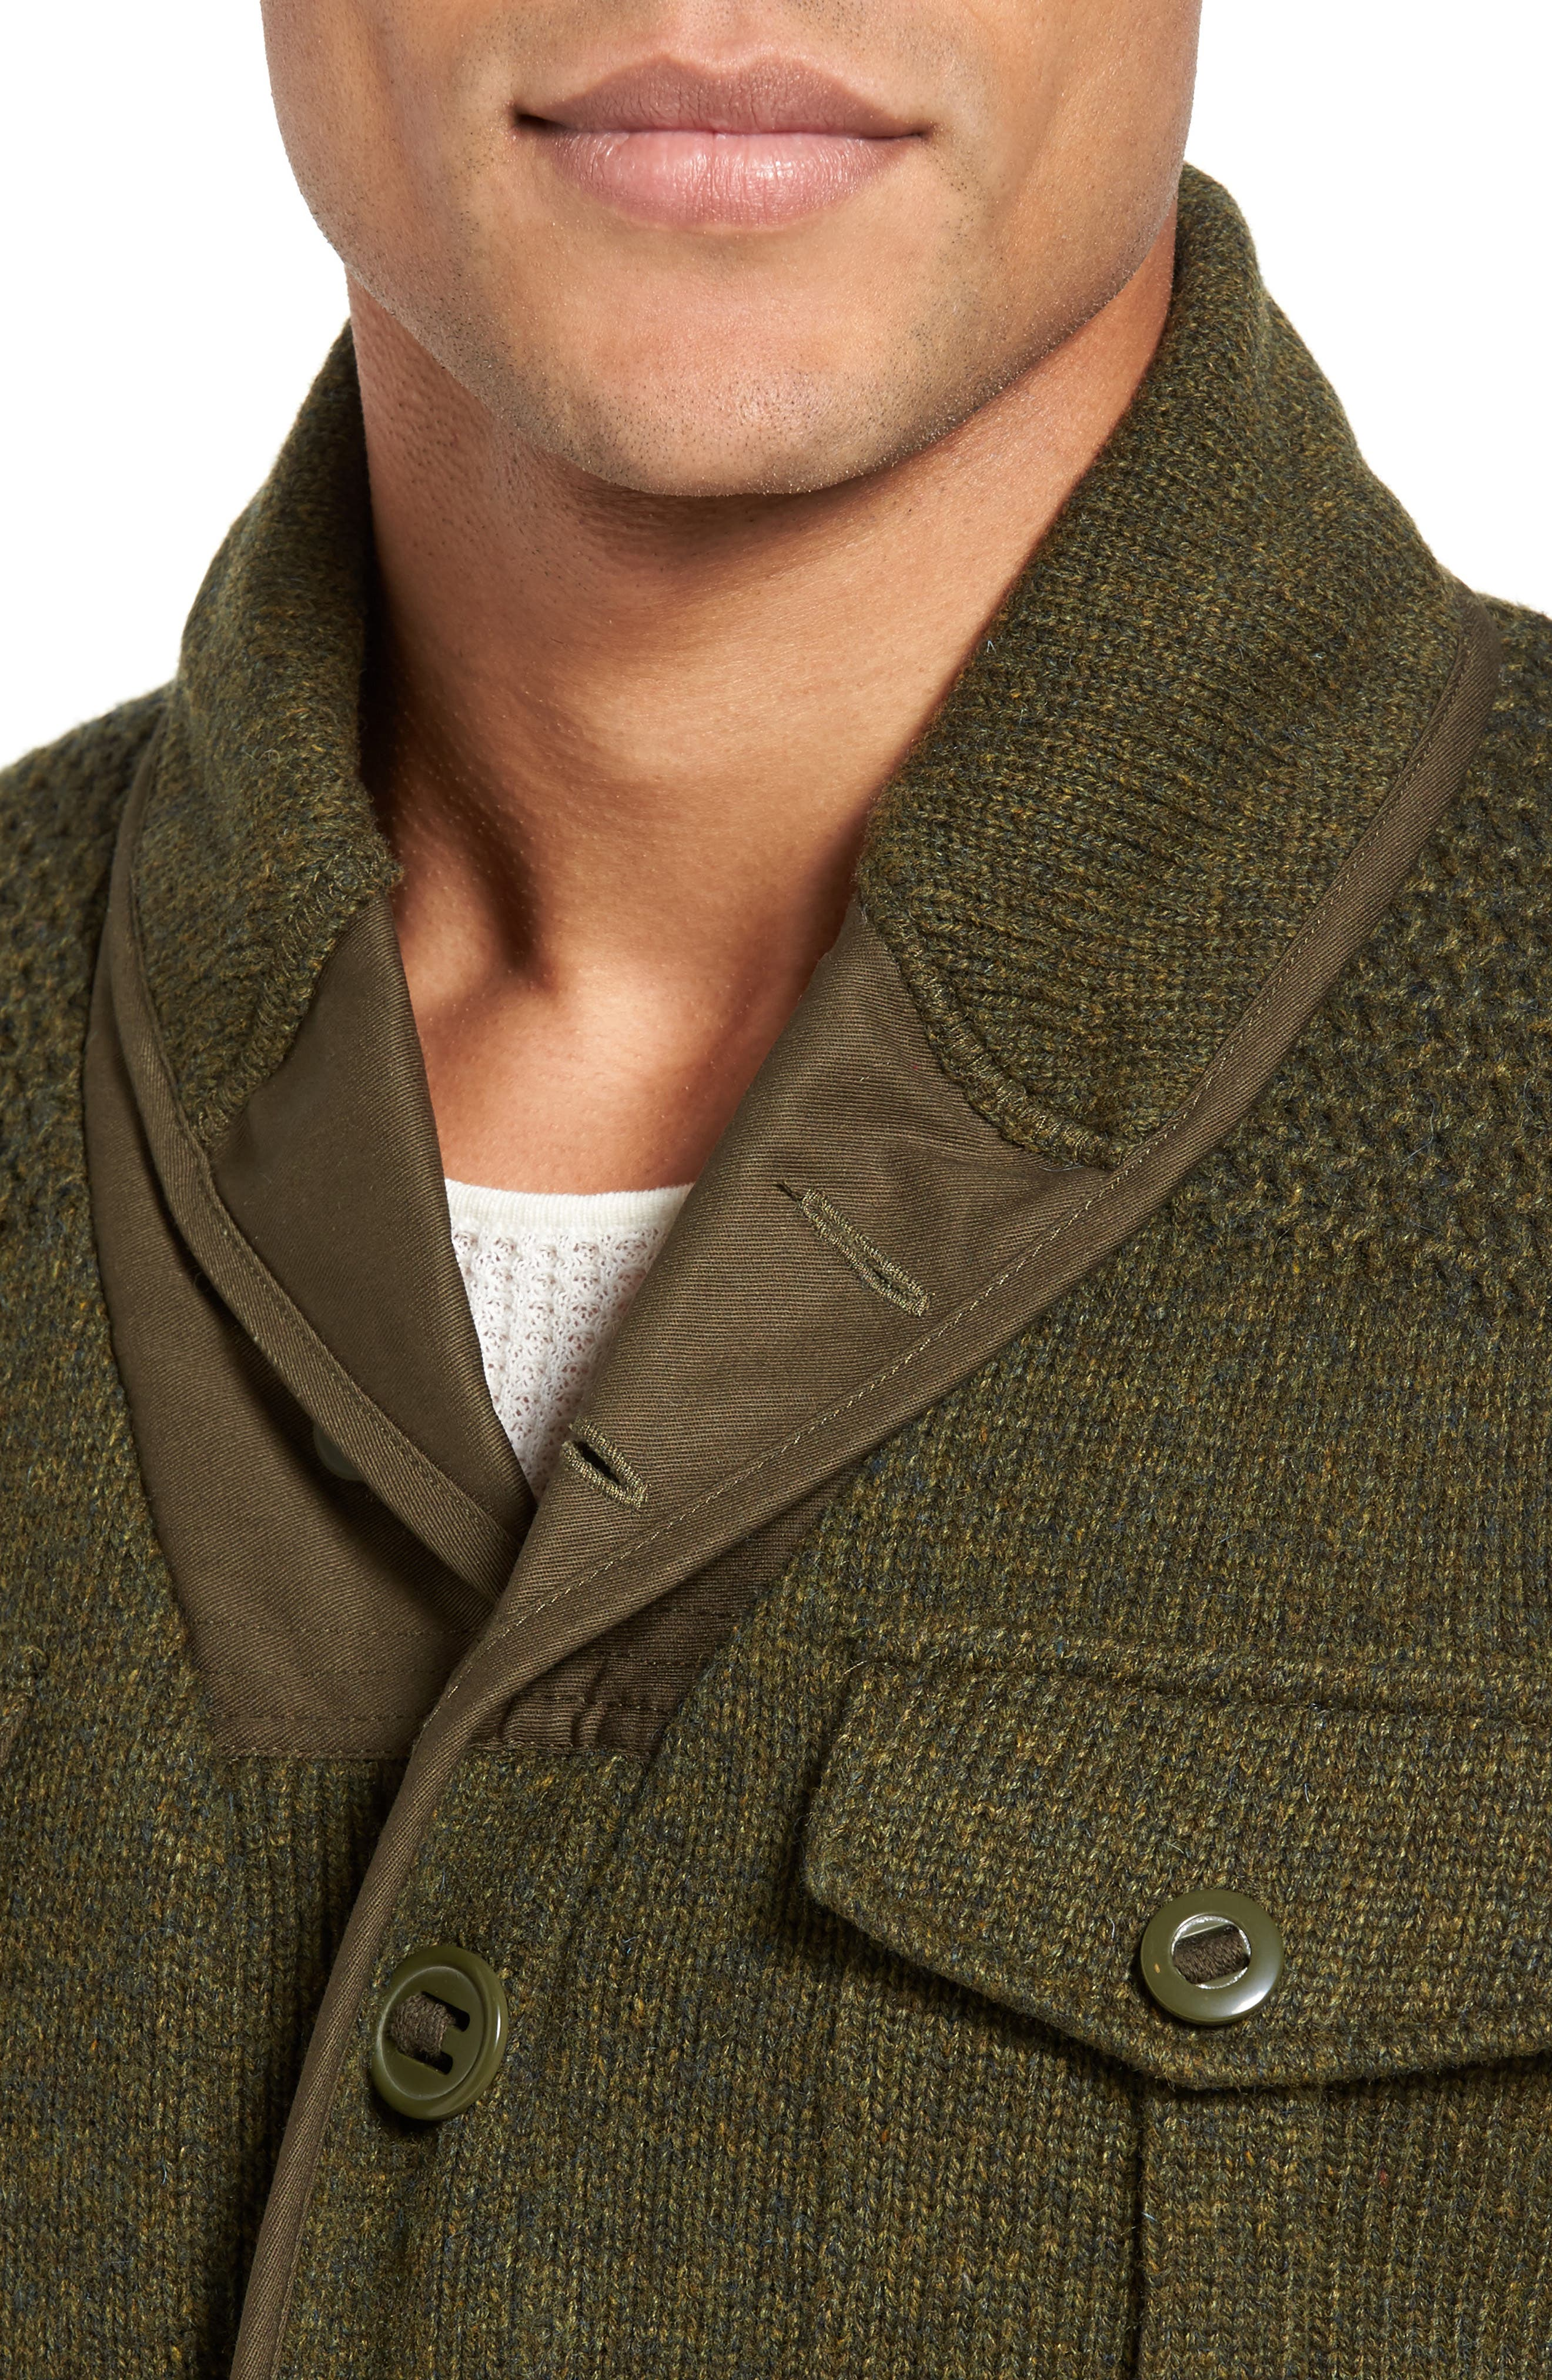 Military Sherpa-Lined Sweater Jacket,                             Alternate thumbnail 10, color,